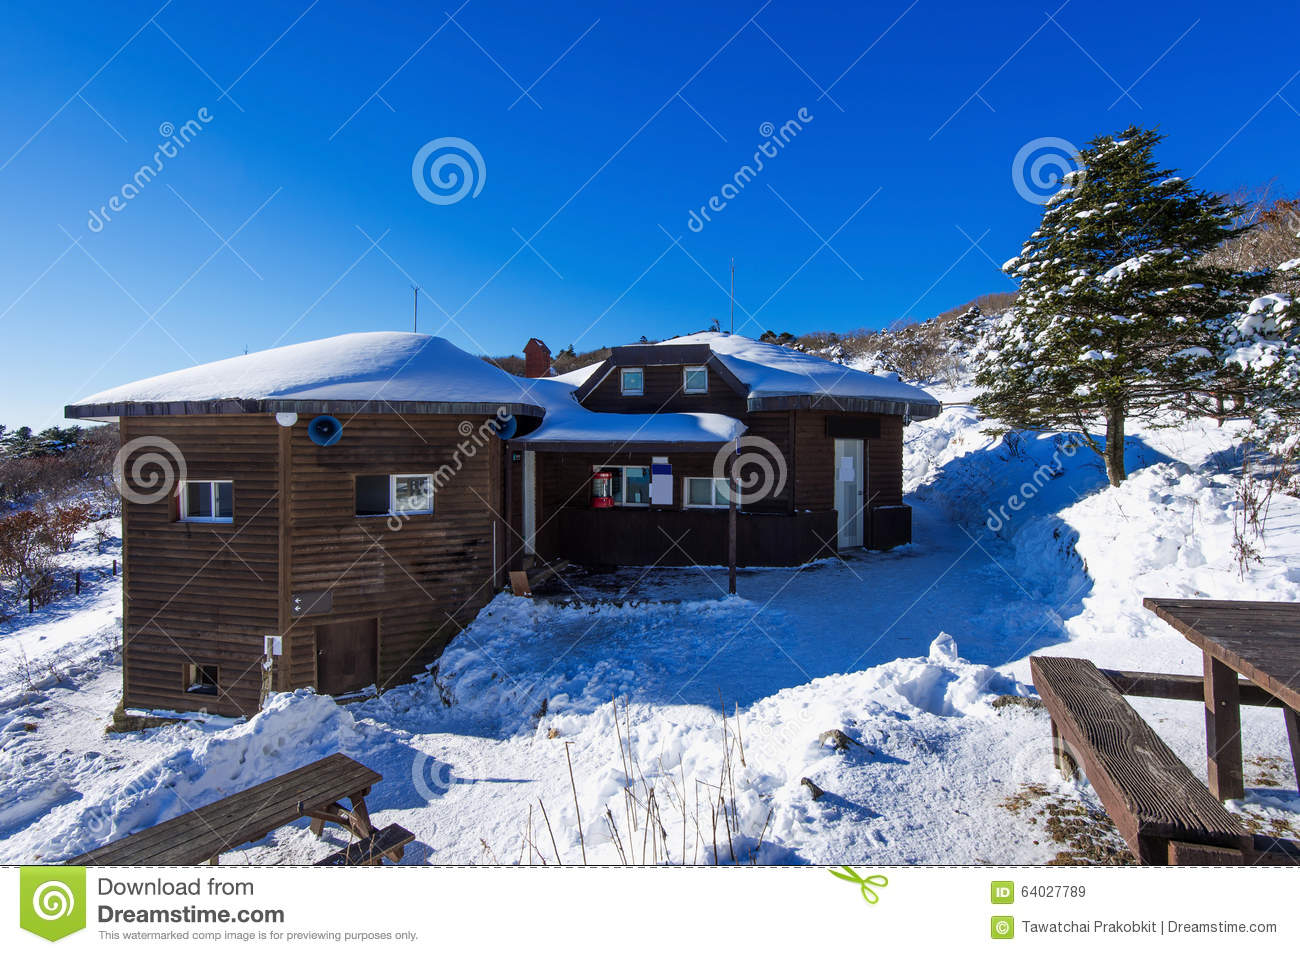 Wooden house on Deogyusan mountains in winter, Korea.